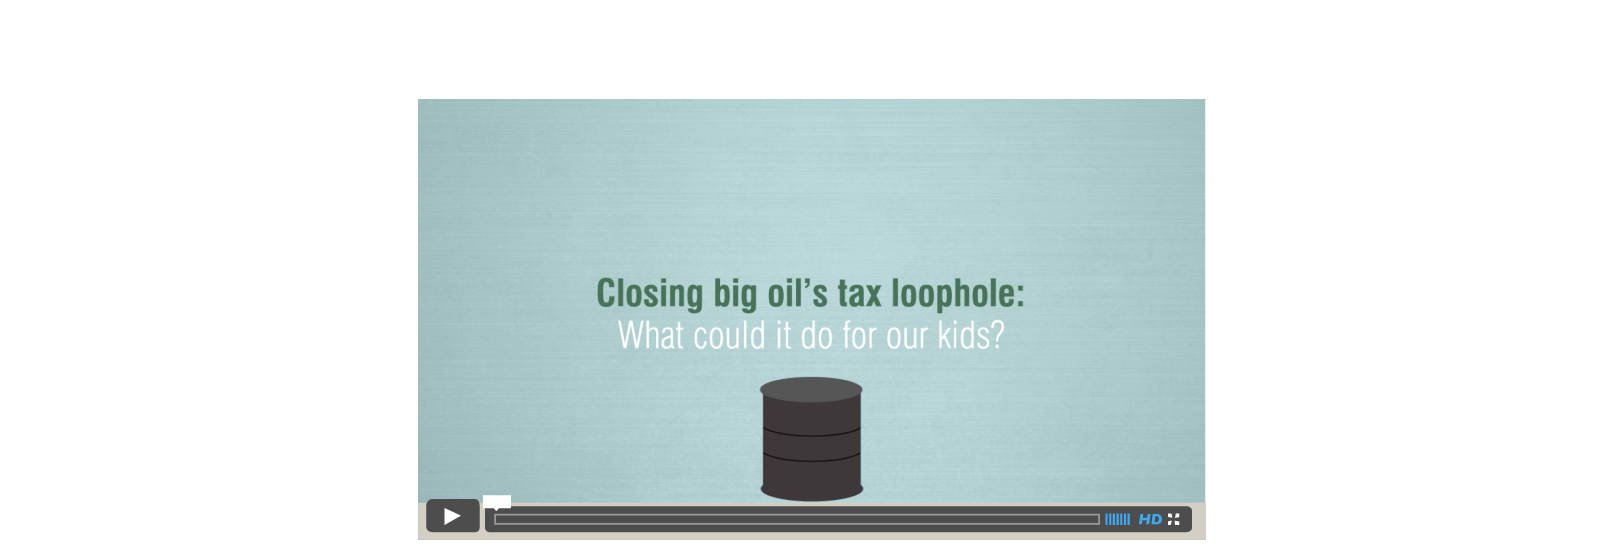 Closing big oil's tax loophole - Sightline Institute